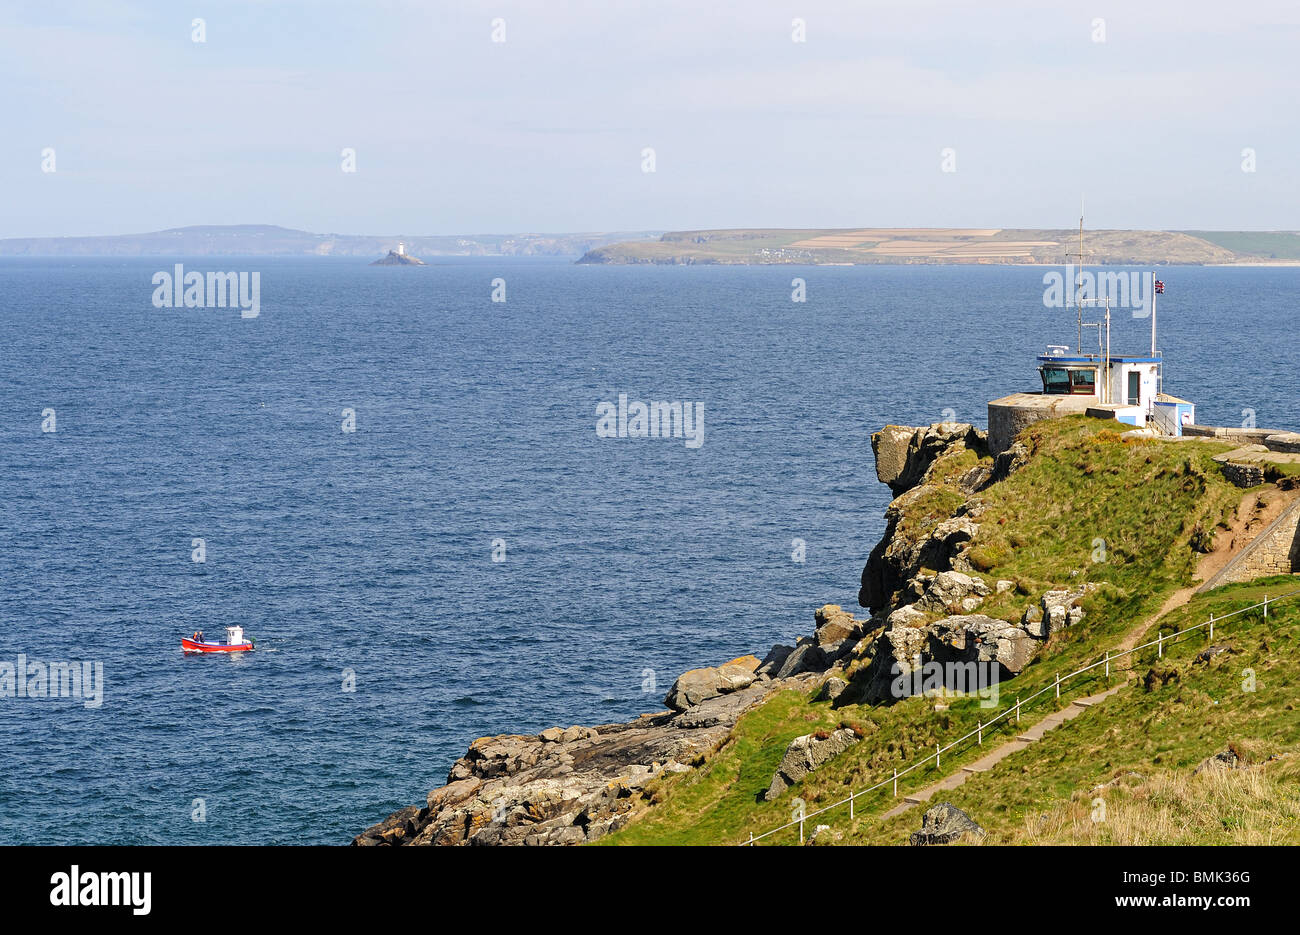 the national lifeguards look out post on the cliffs above st.ives in cornwall, uk - Stock Image